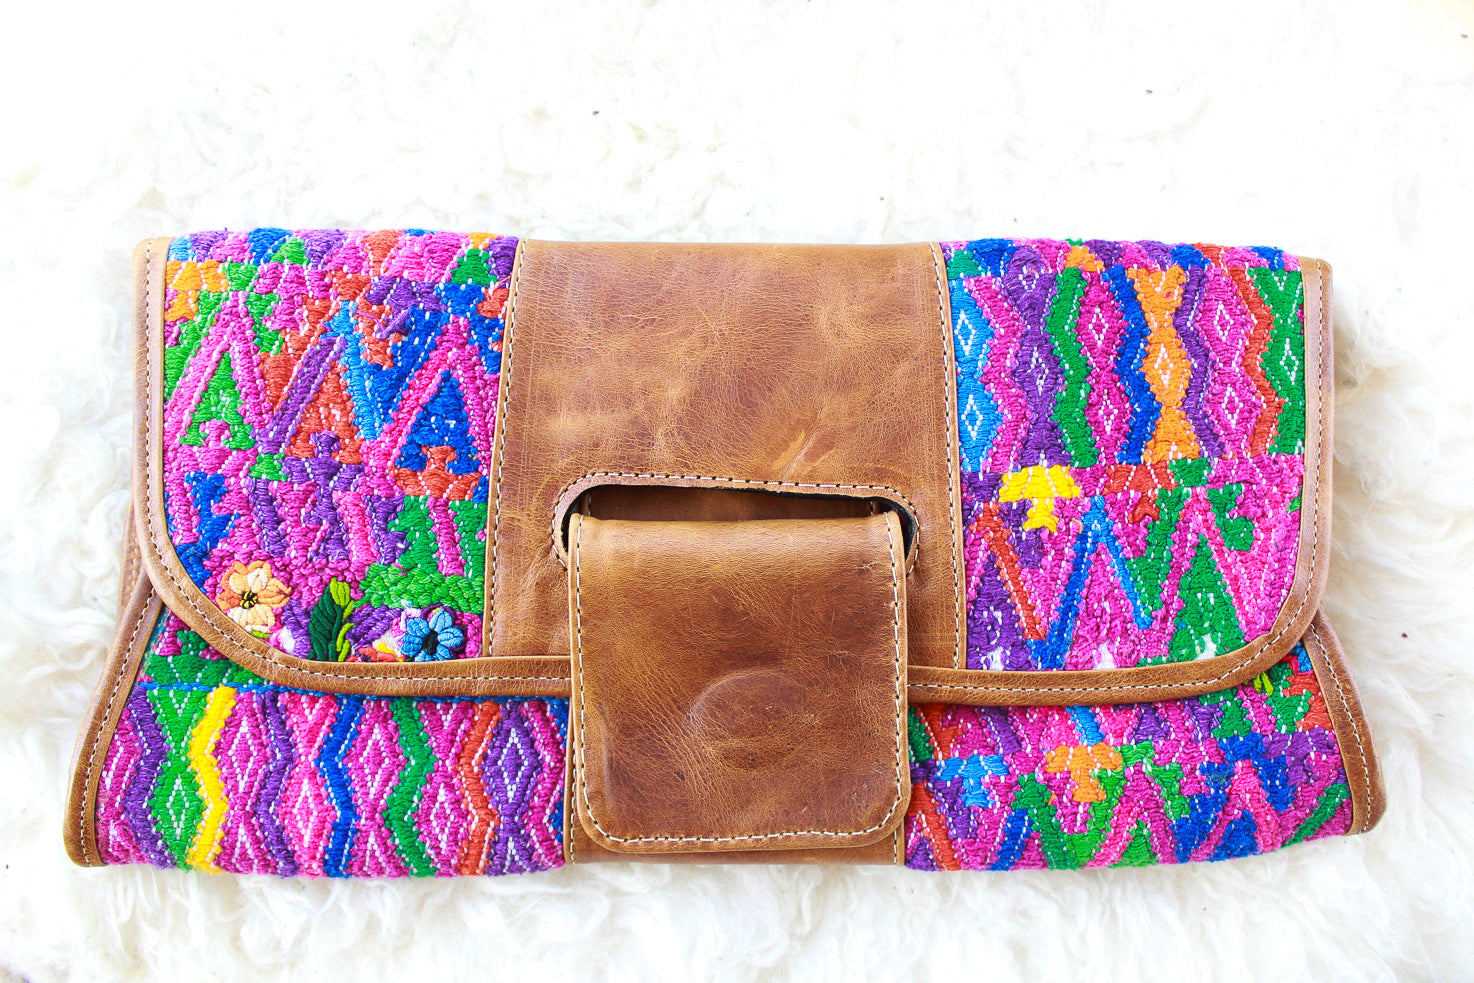 The Camilla Clutch - Wild Hearts & Halos